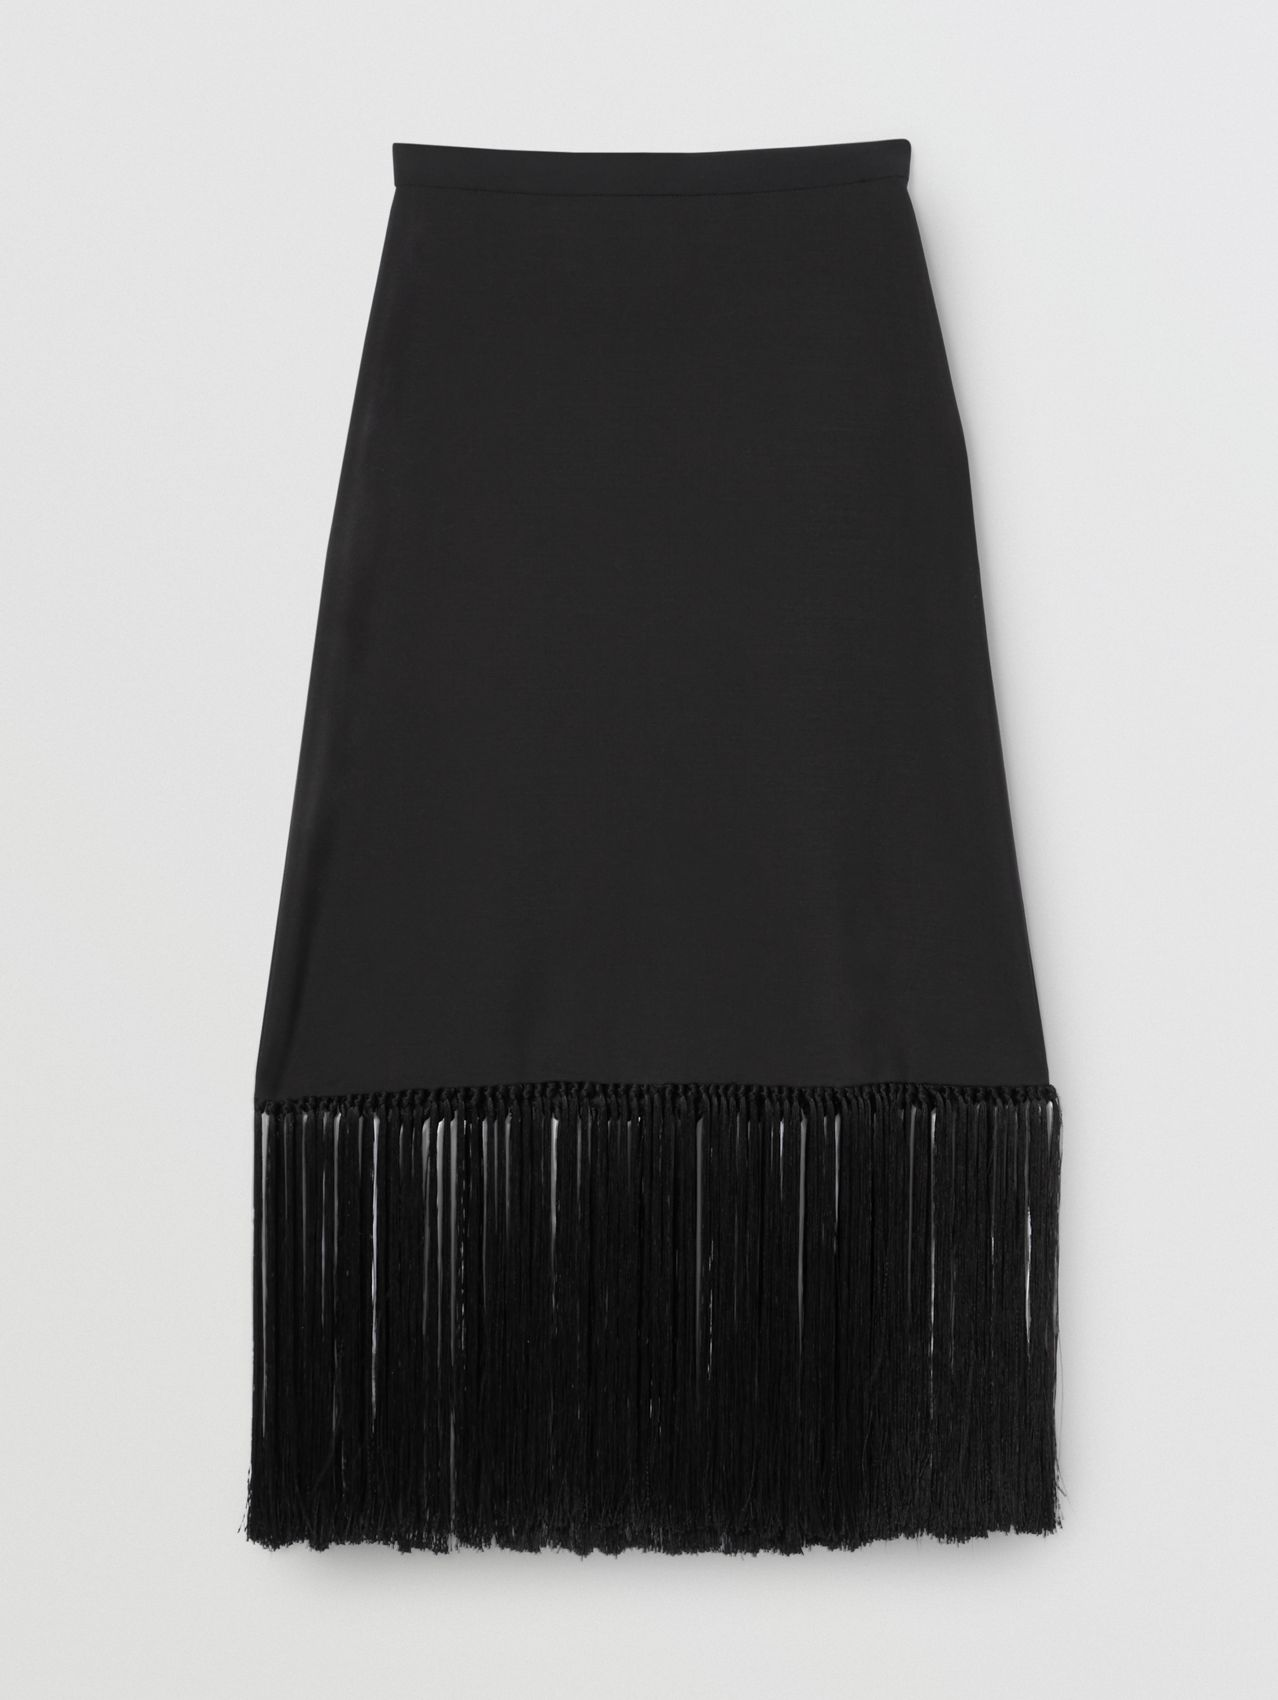 Fringed Mohair Wool A-line Skirt in Black